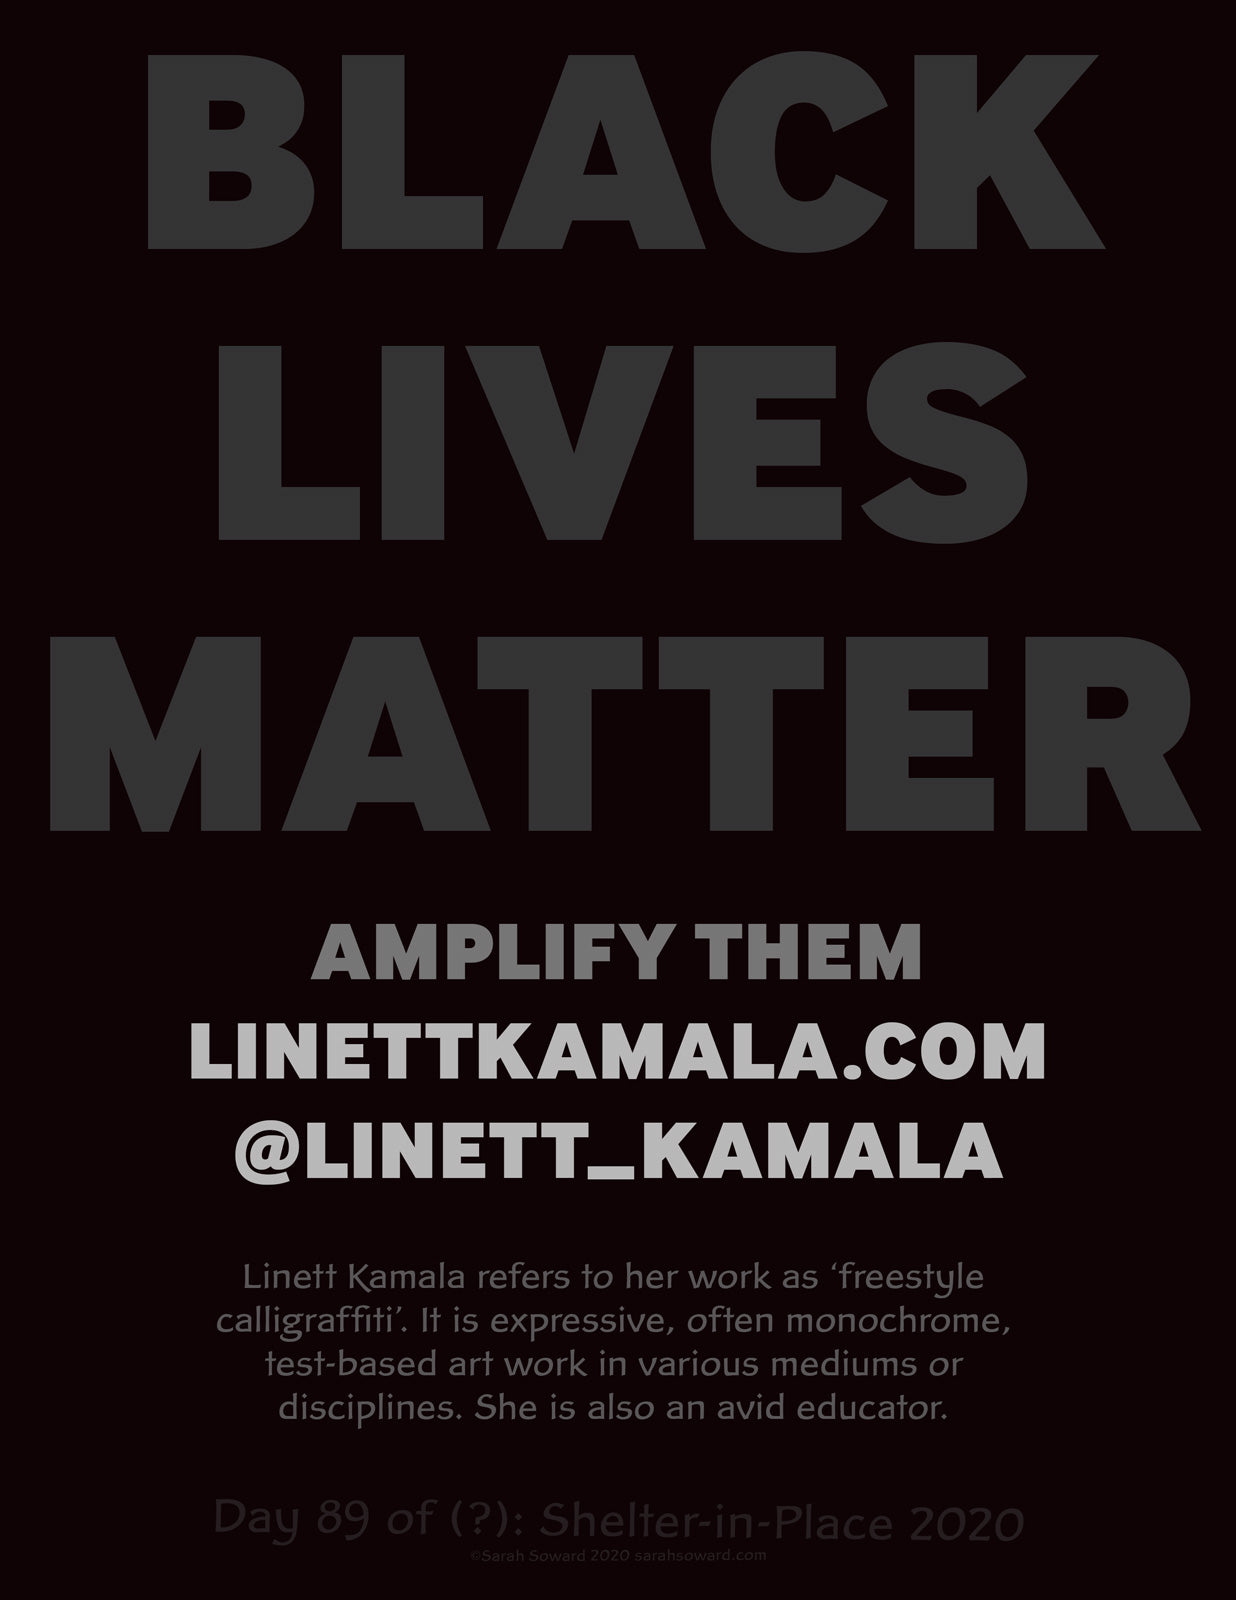 The image is only text. The text on the image reads  BLACK LIVES MATTER Amplify Them LinettKamala.com  @linett_kamala Linett Kamala refers to her work as 'freestyle calligraffiti'. It is expressive, often monochrome, test-based art work in various mediums or disciplines. She is also an avid educator.